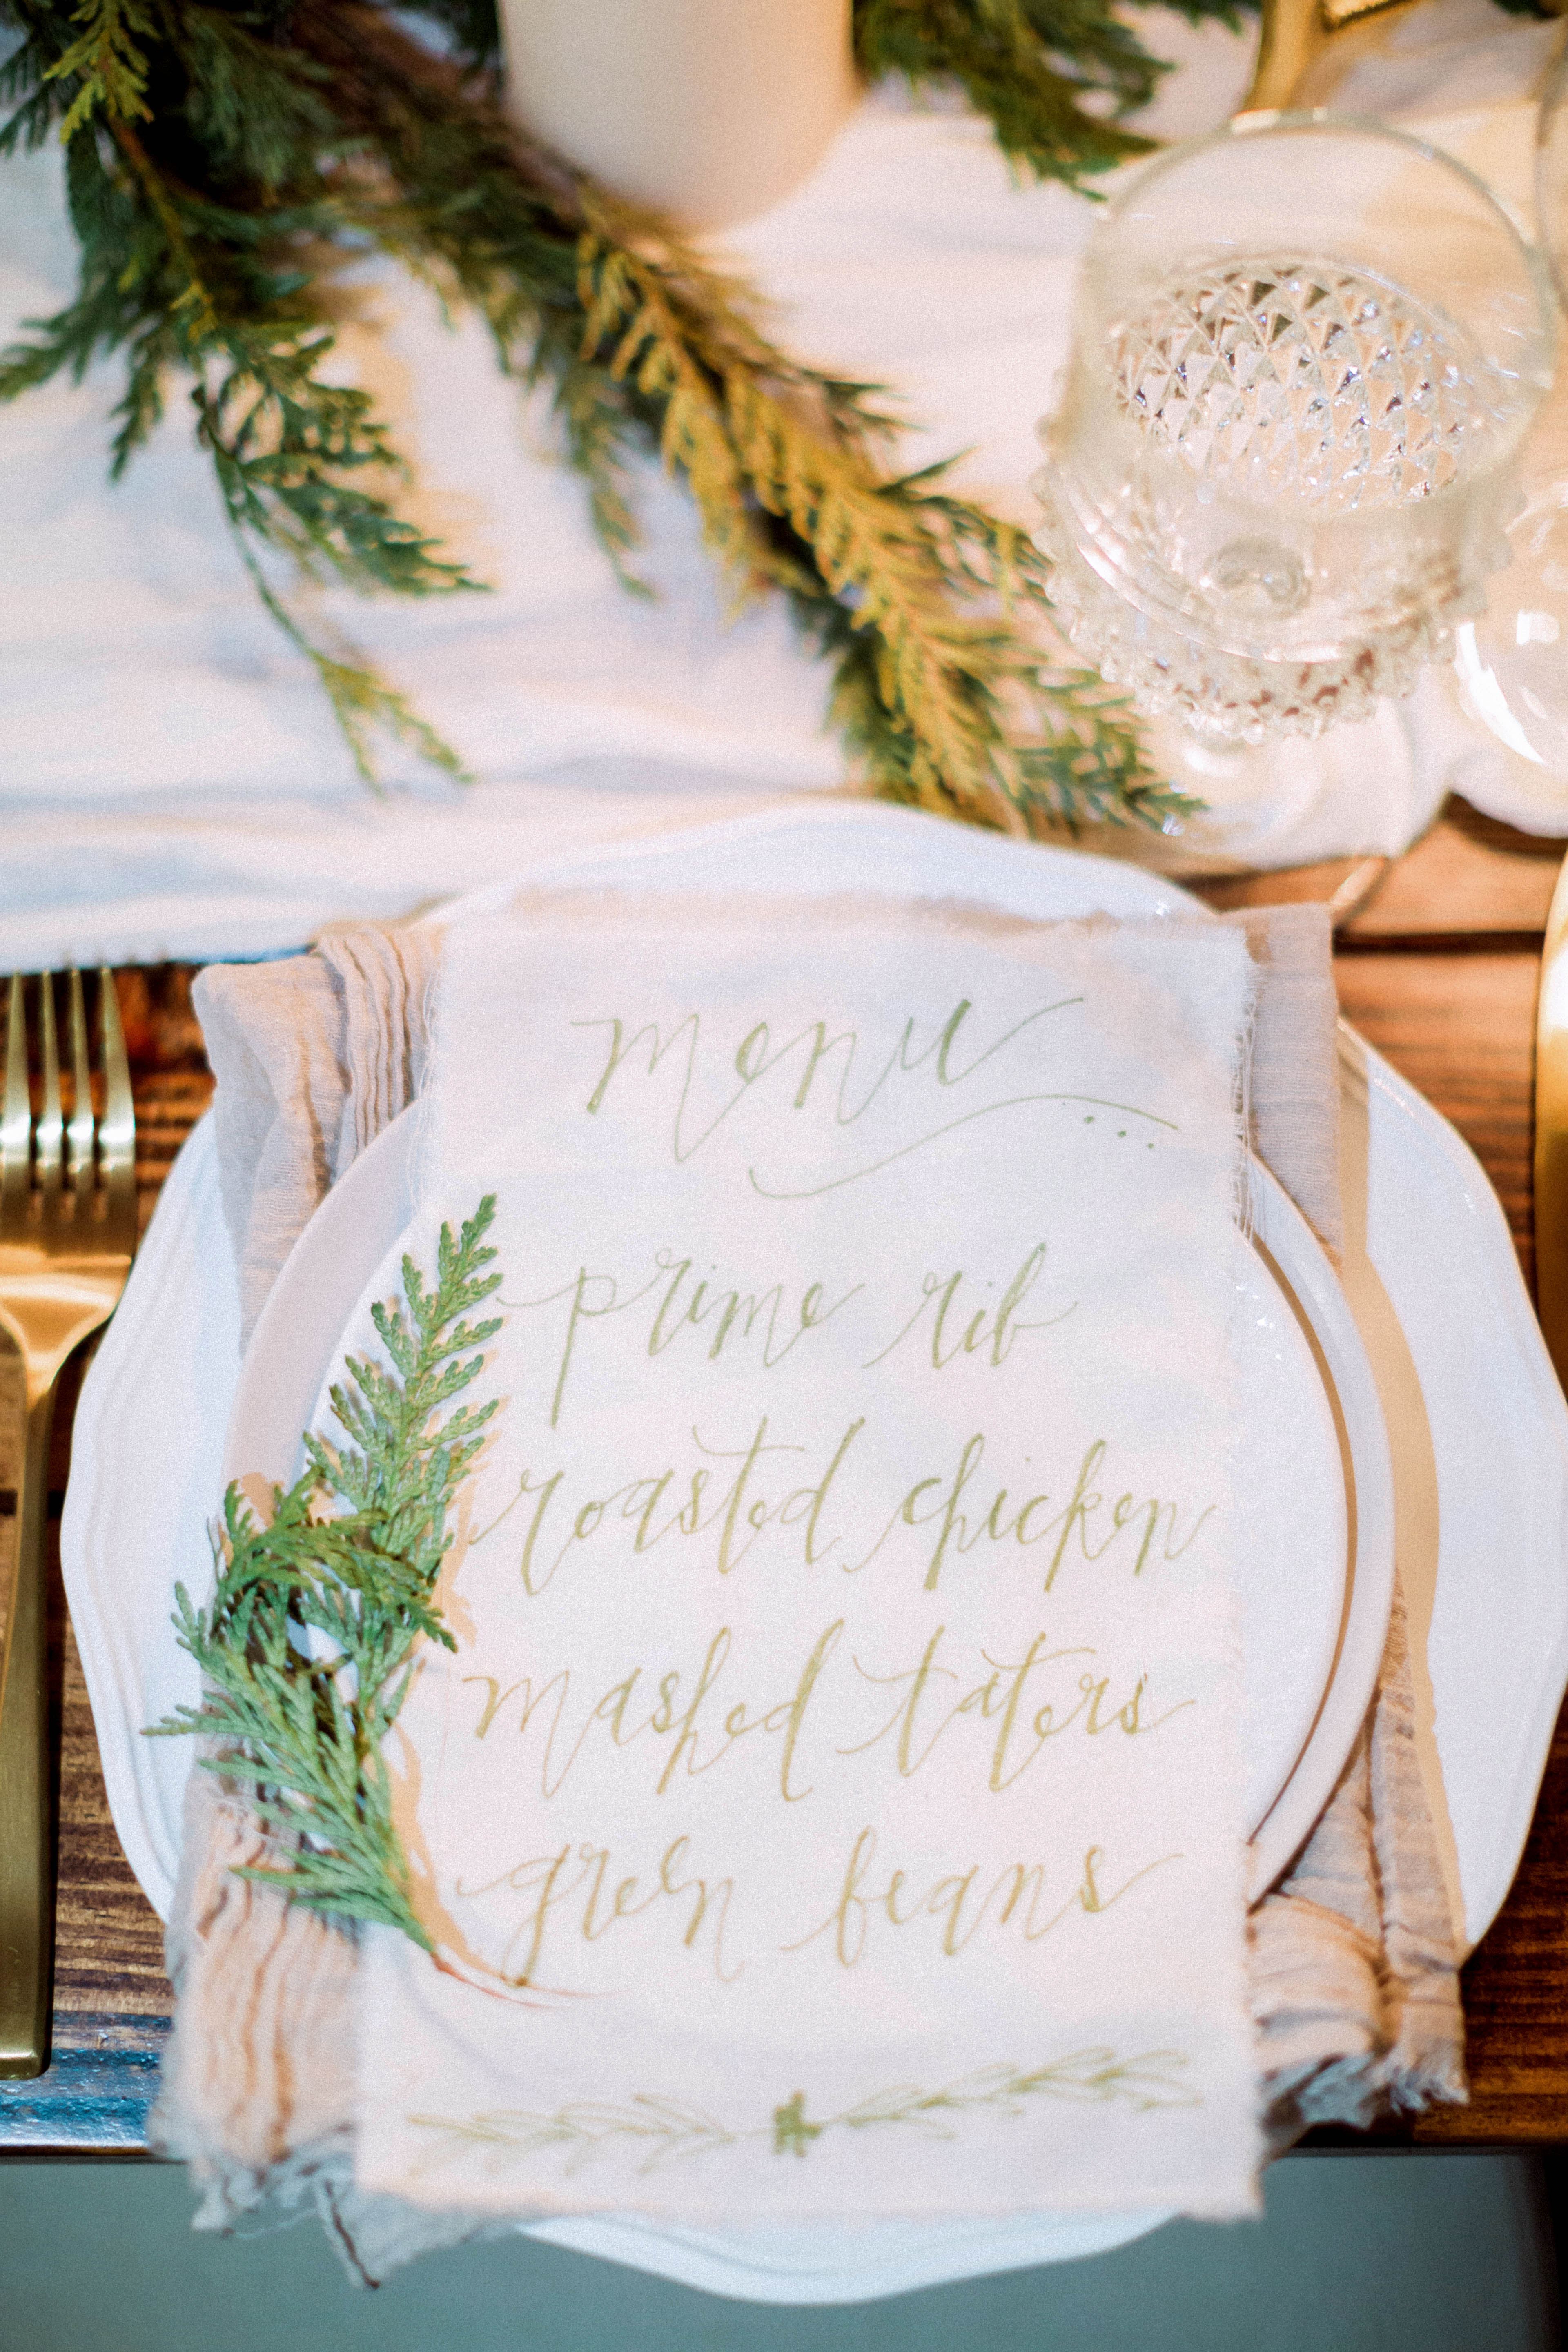 winter rehearsal dinner event menu place setting